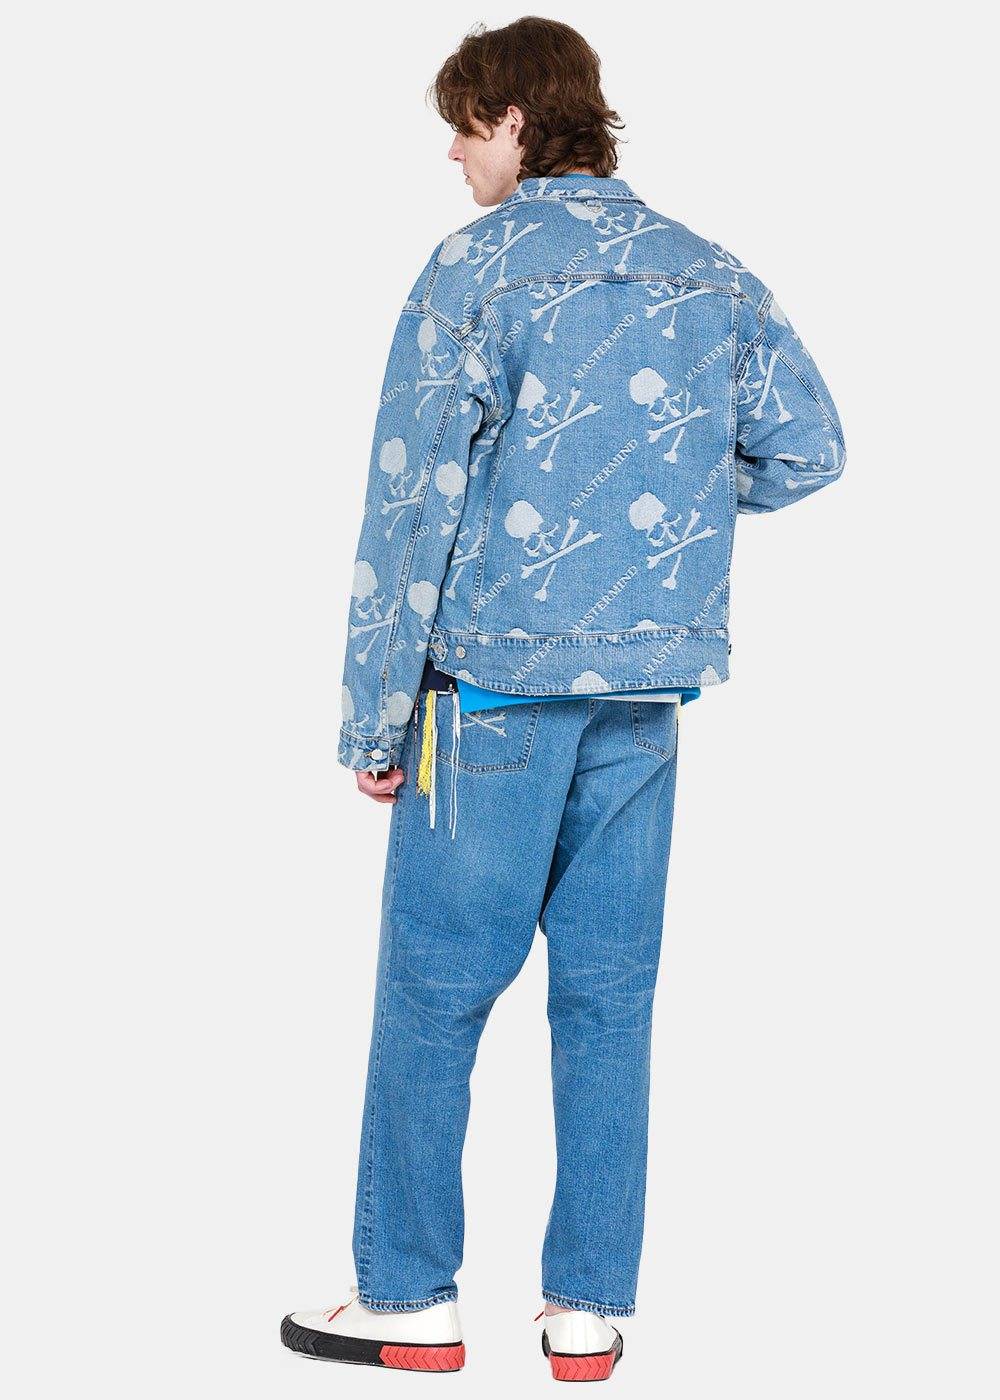 Indigo Logo Jacquard Denim Jacket